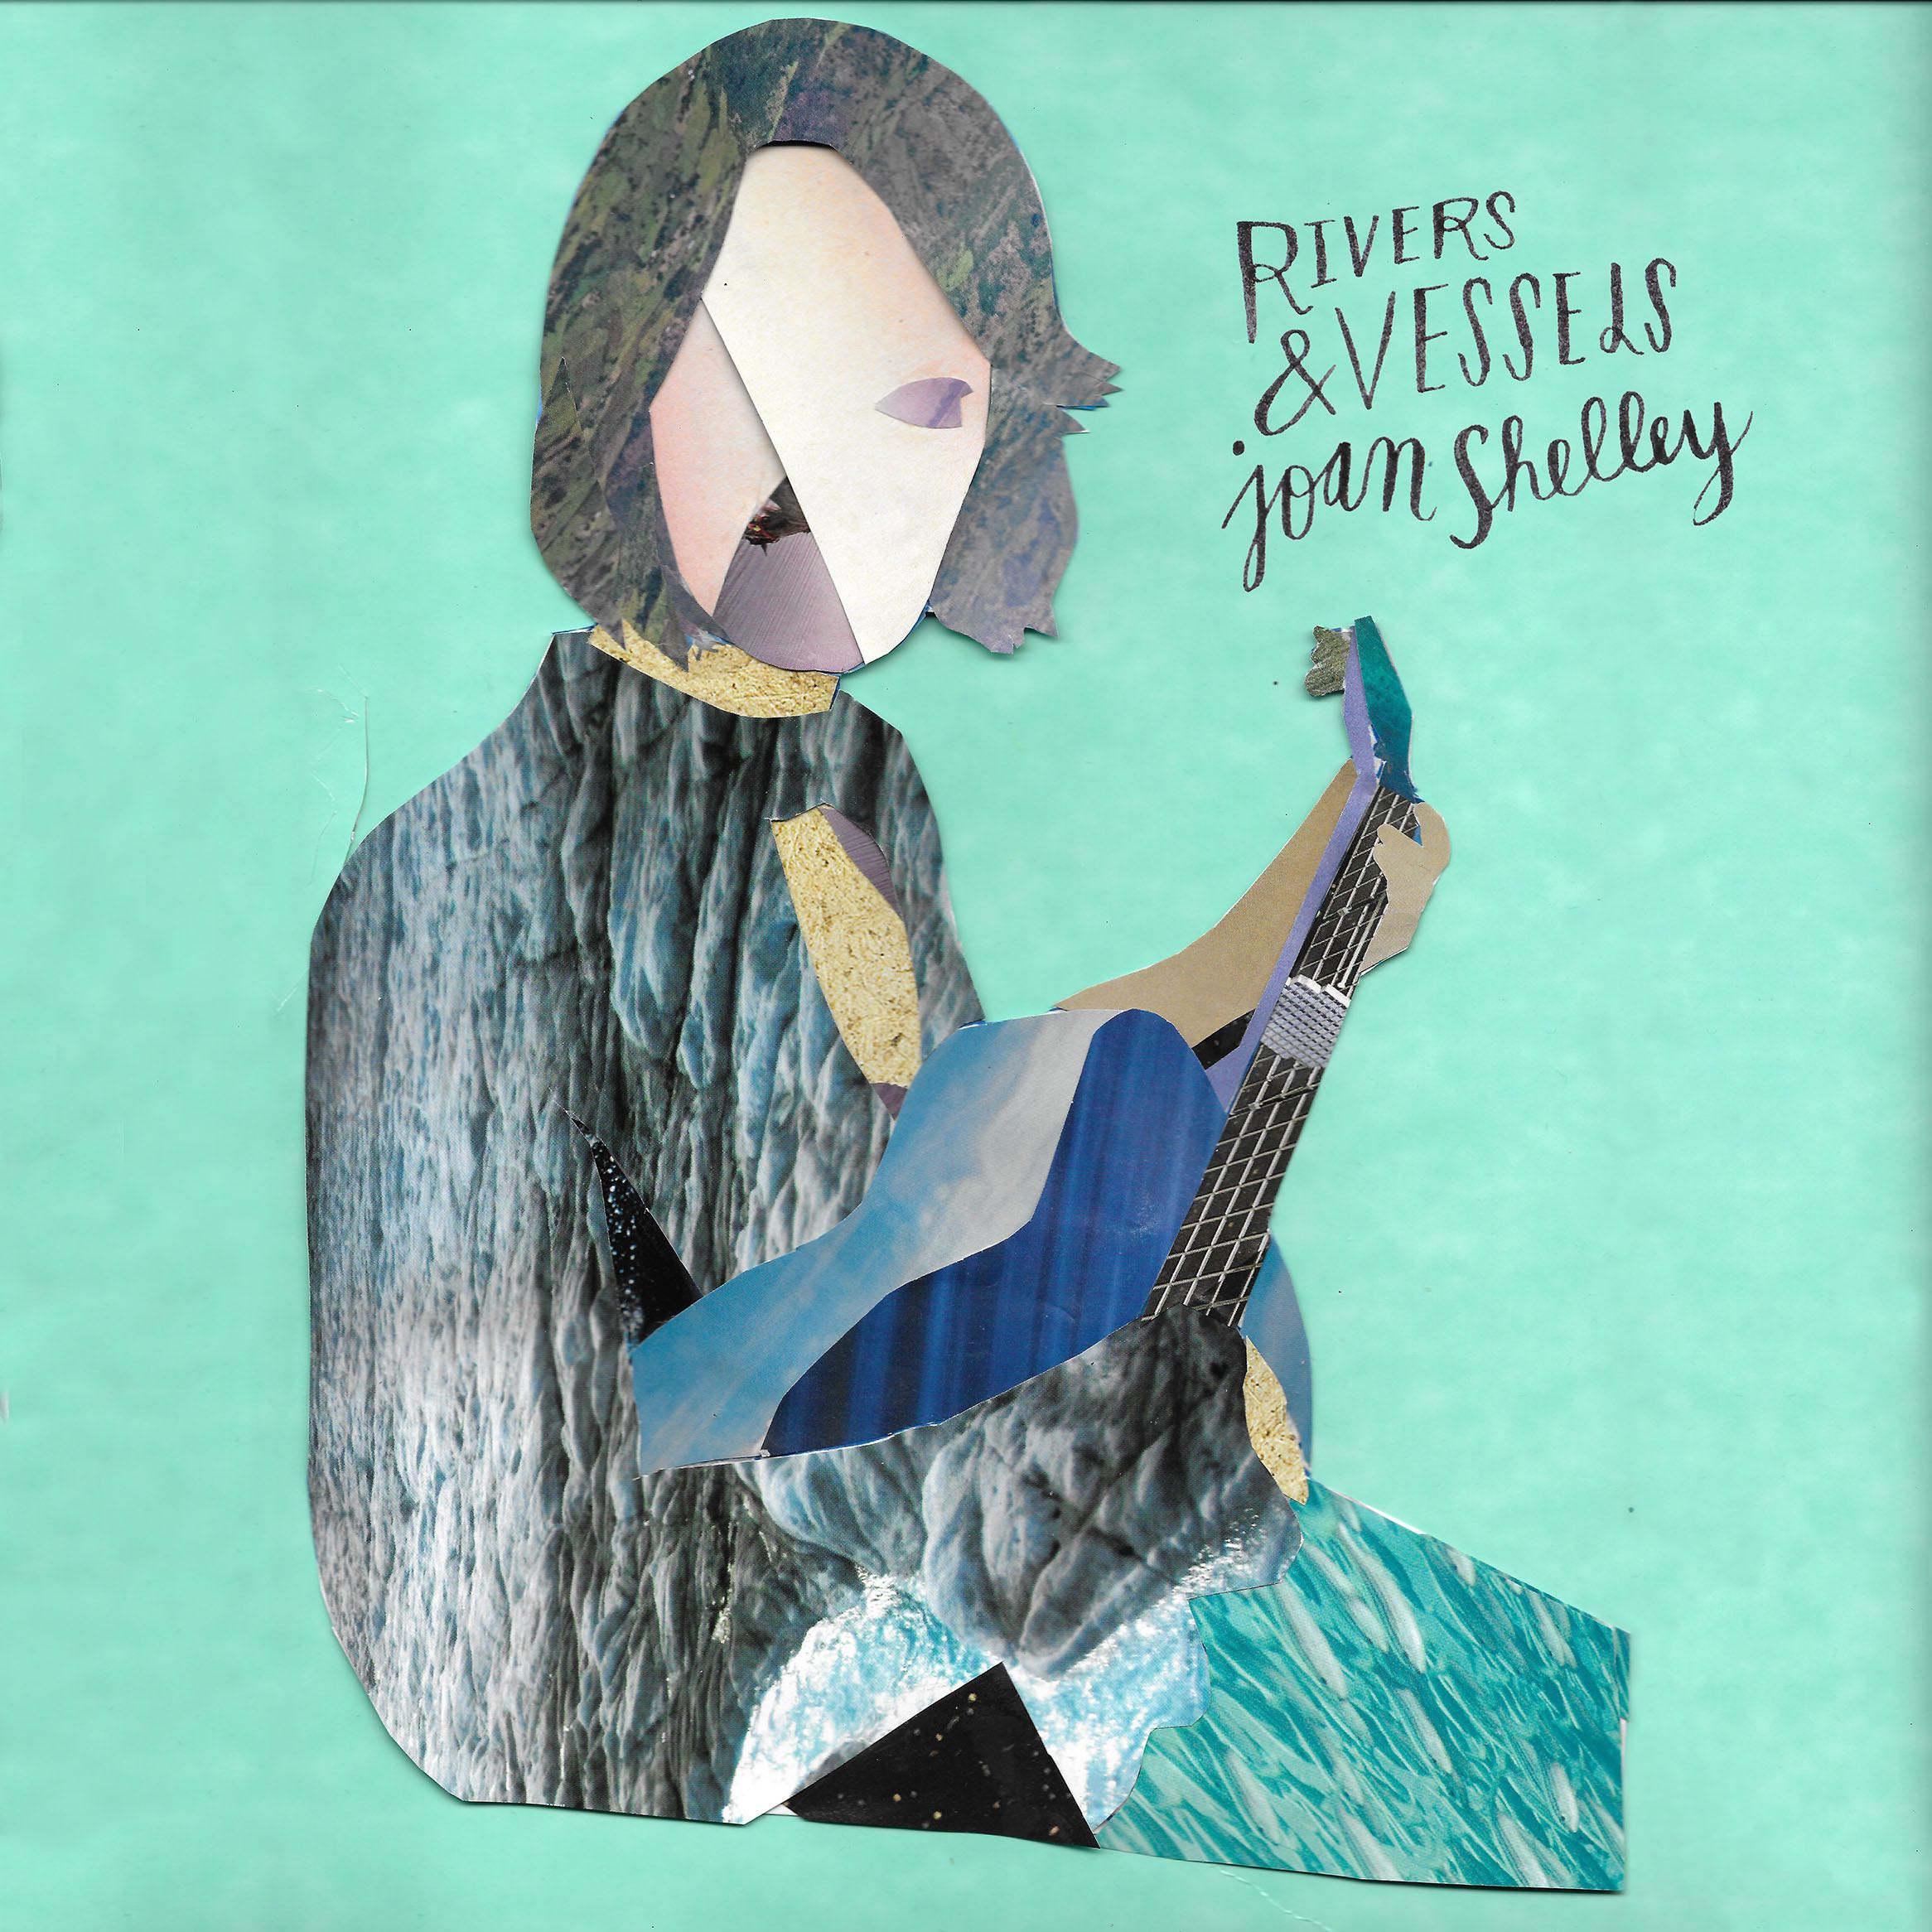 Joan Shelley - Rivers and Vessels  [RSD 2019]